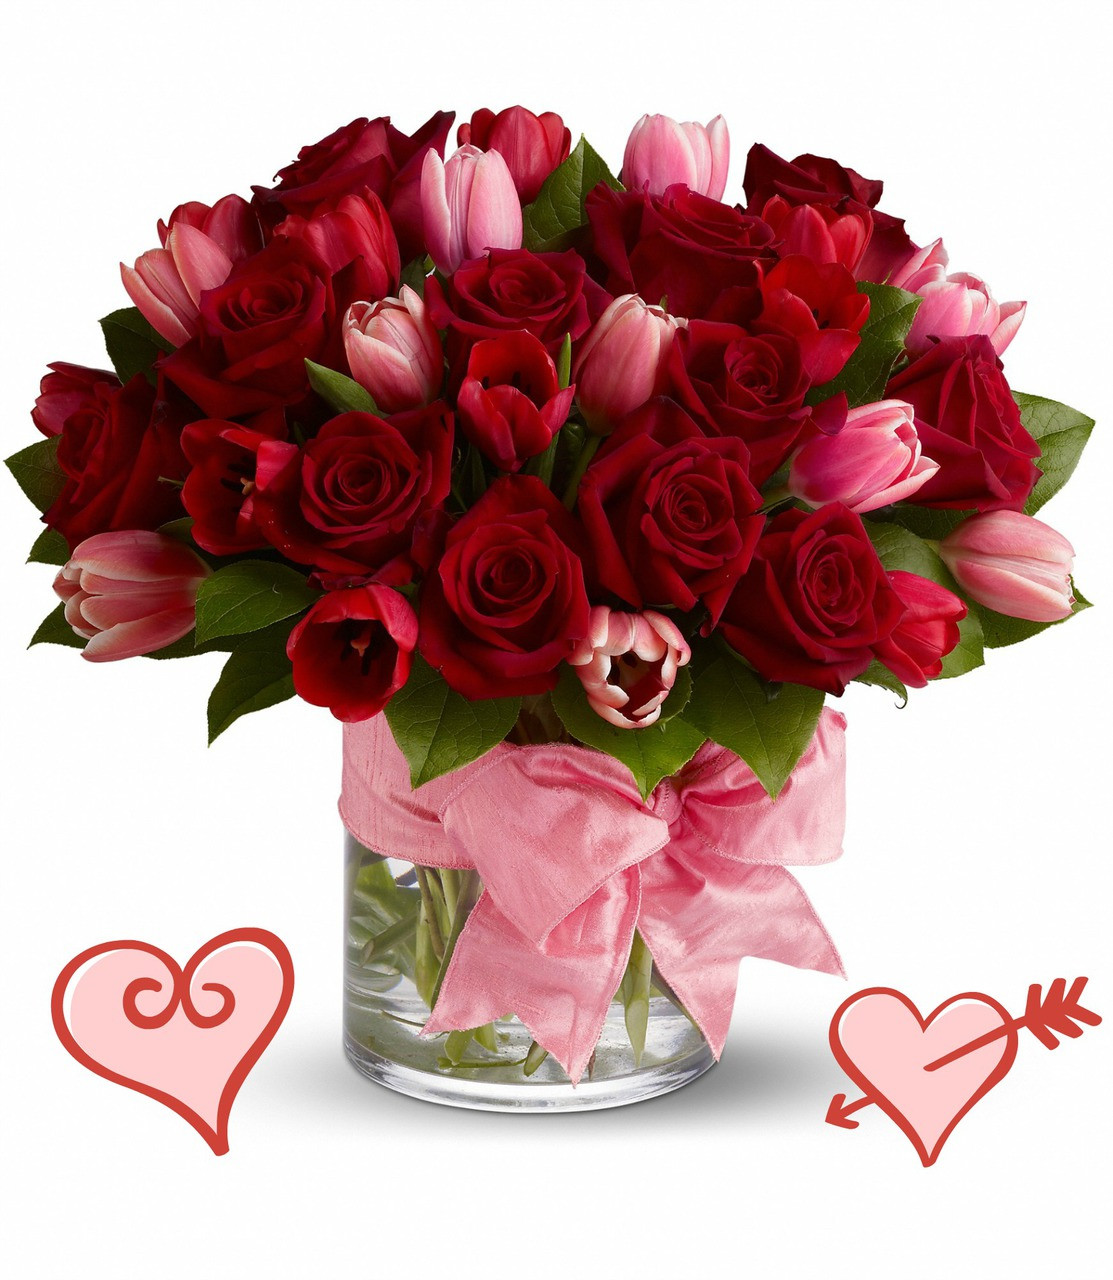 Ps i love you beautiful tulips red roses valentines day ps i love you tulips for valentines day by enchanted florist pasadena tx a romantic izmirmasajfo